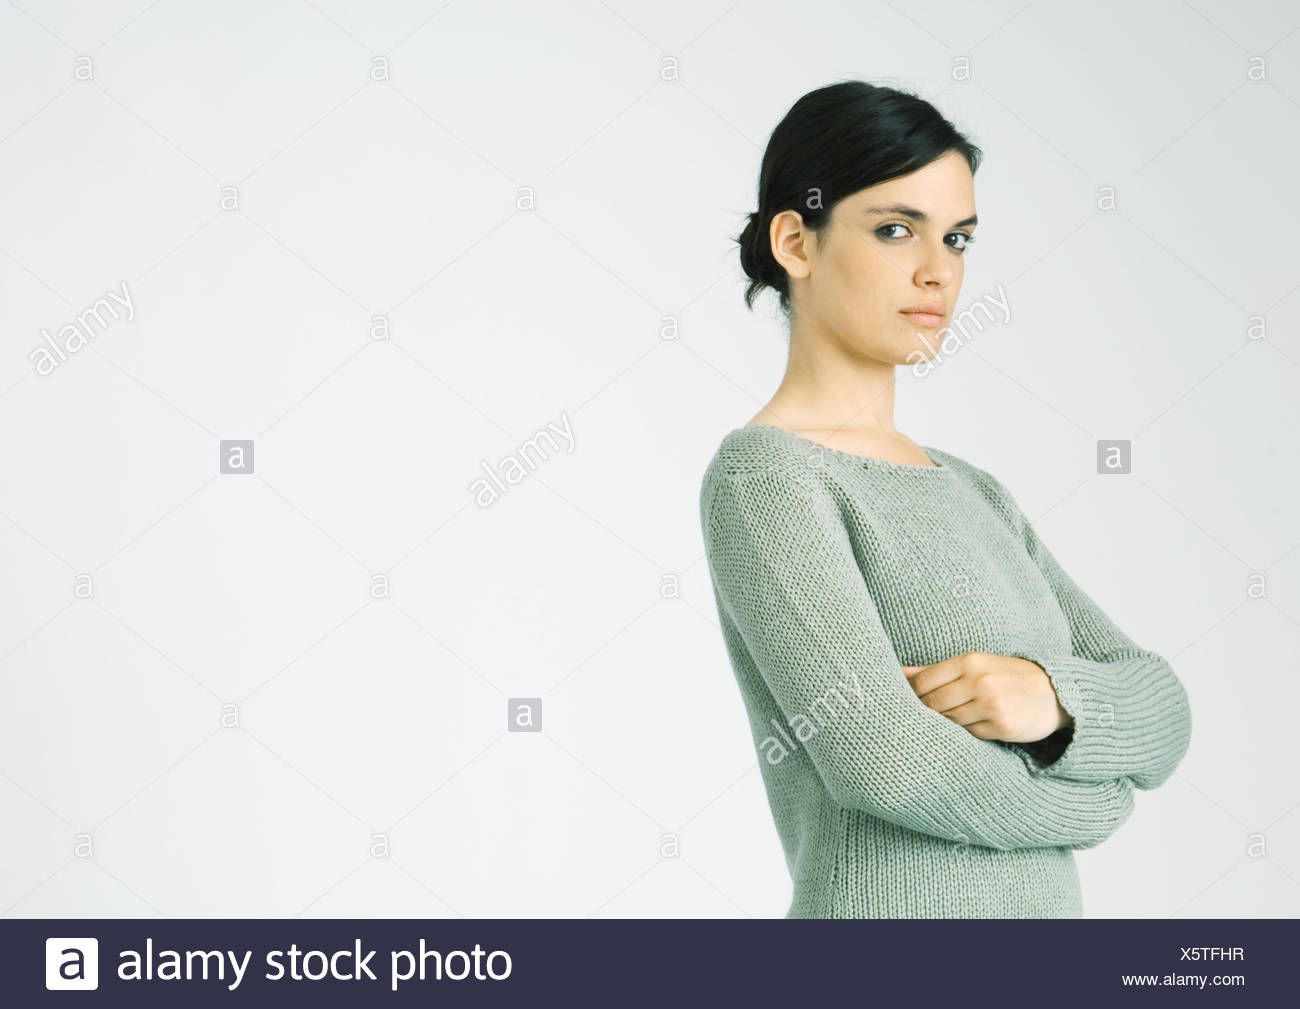 Young woman standing with arms crossed, looking at camera - Stock Image